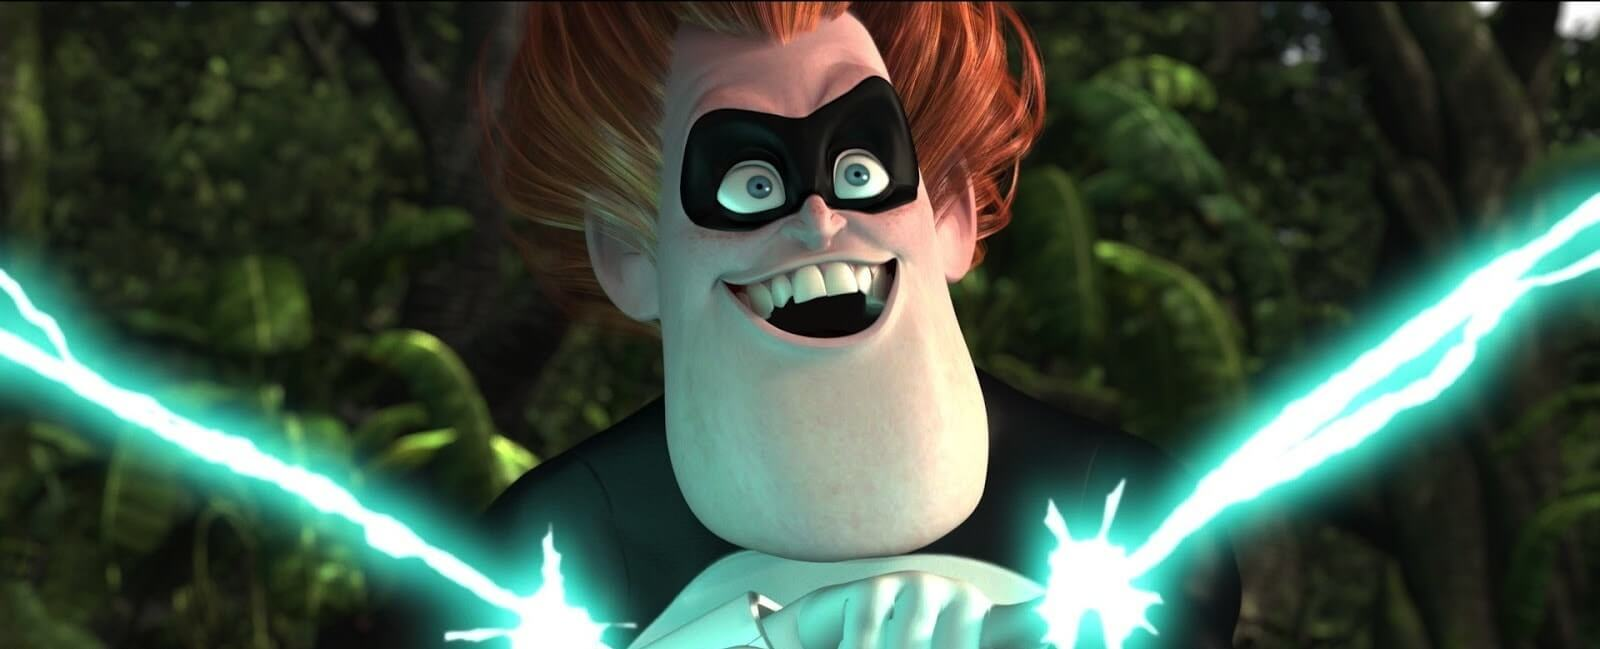 The Pixar Storytelling Formula - An Inside Look - The Incredibles Syndrome